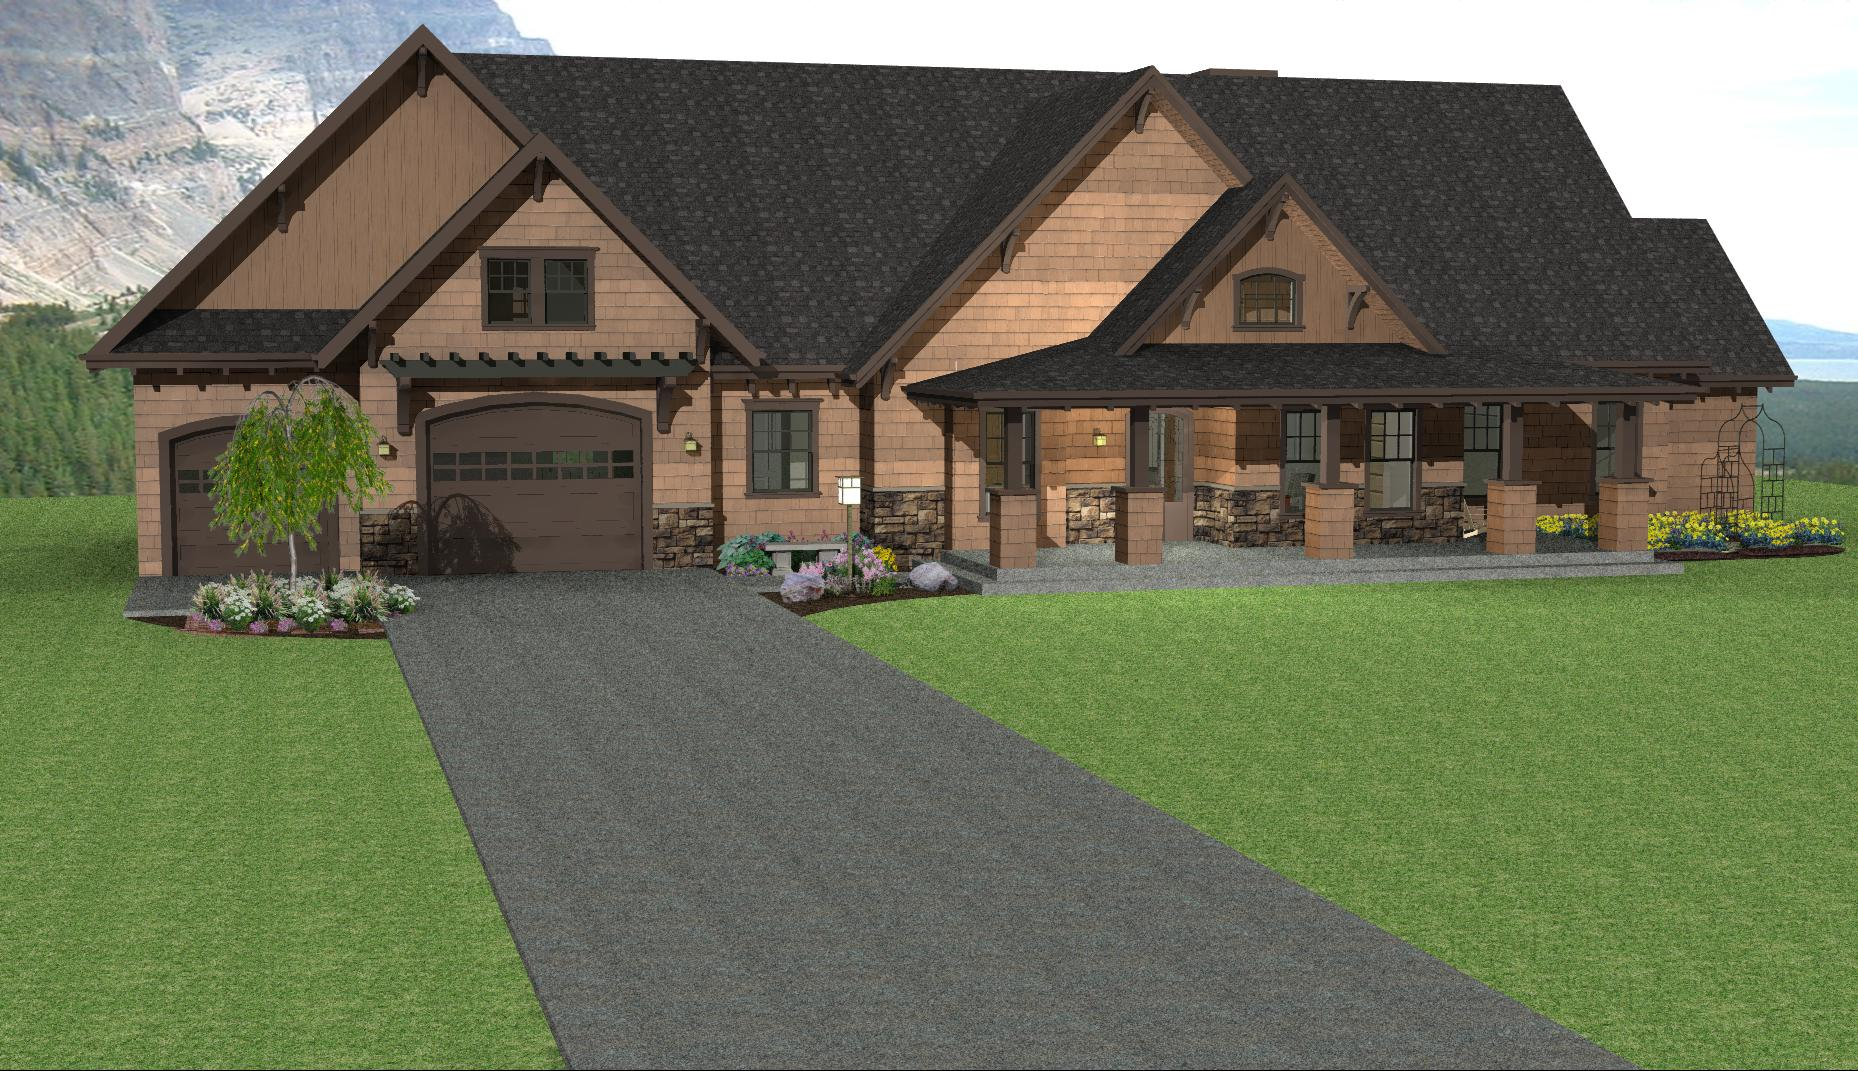 Ranch style home designs find house plans for Ranch style house designs floor plans